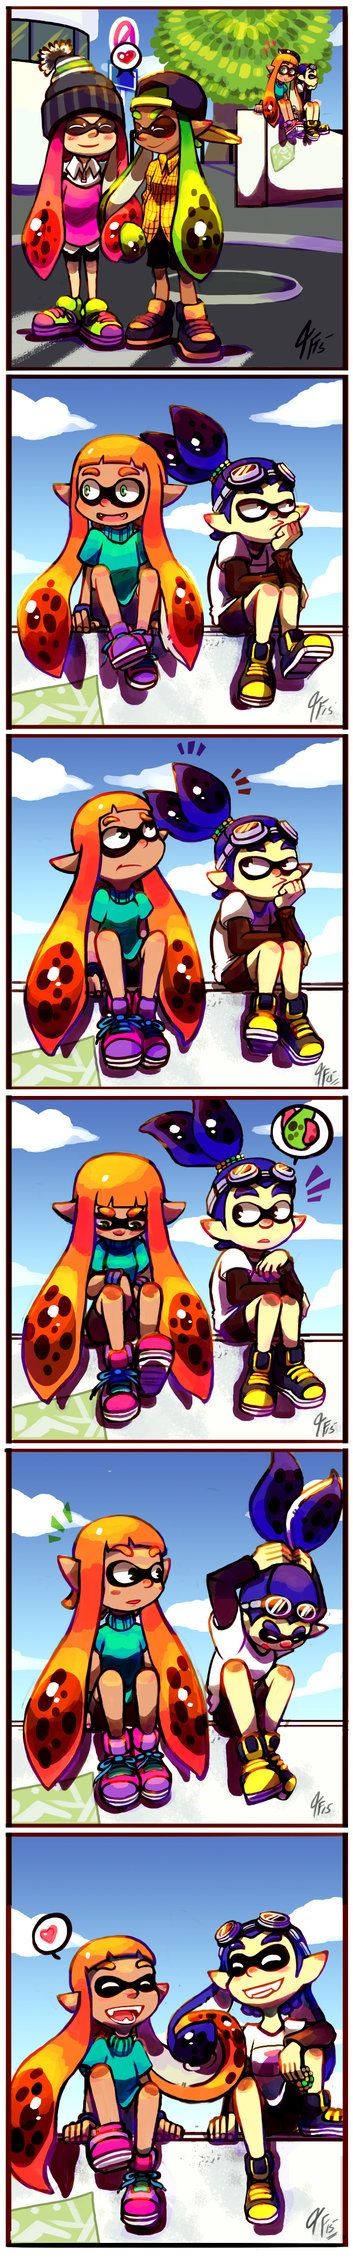 Tentacle in Tentacle by TamarinFrog on DeviantArt